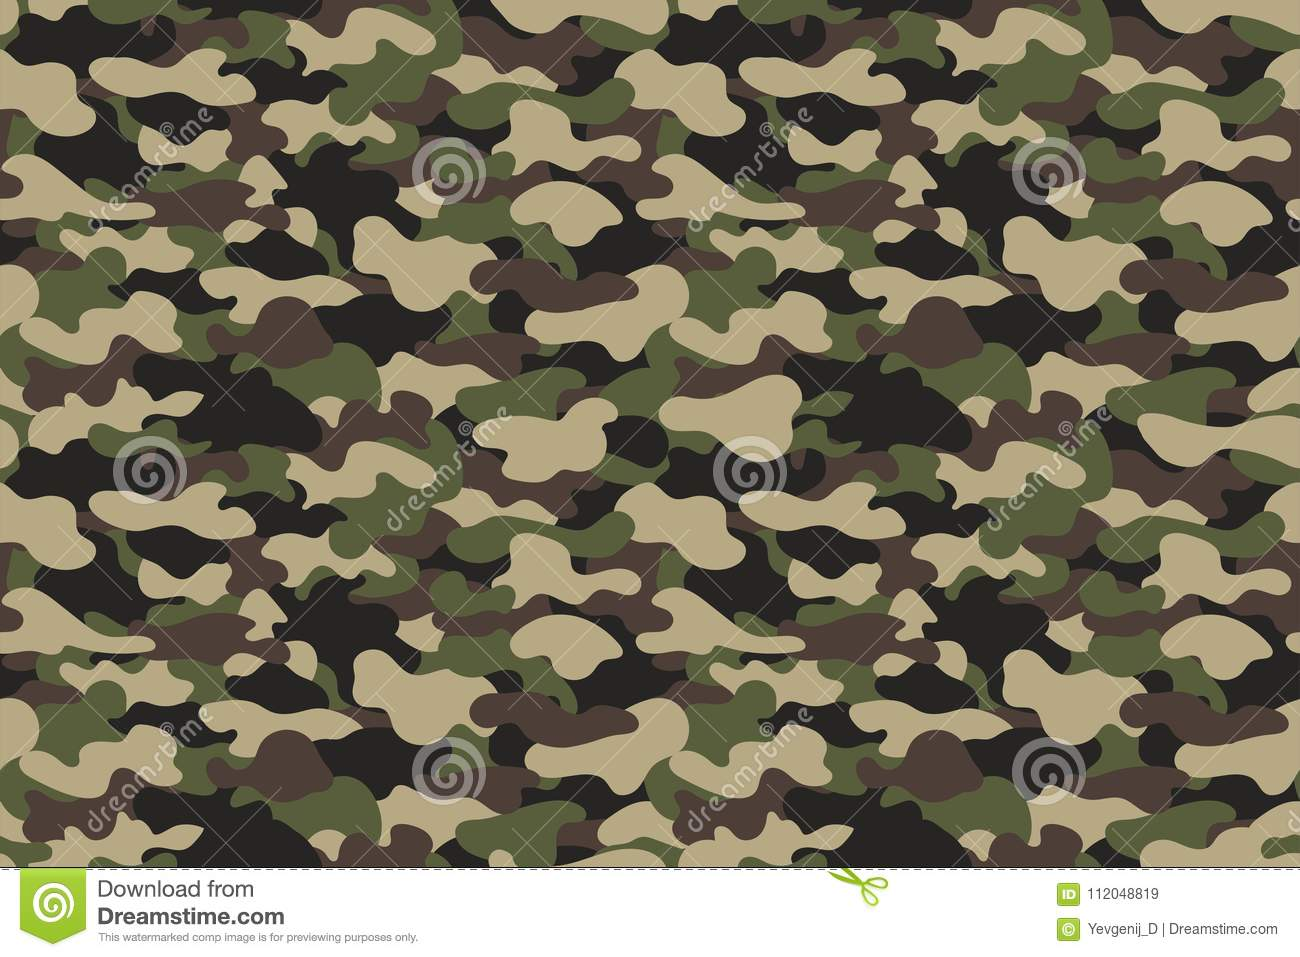 Camouflage seamless pattern military clothing texture background download camouflage seamless pattern military clothing texture background with green and brown foliage stock vector toneelgroepblik Choice Image